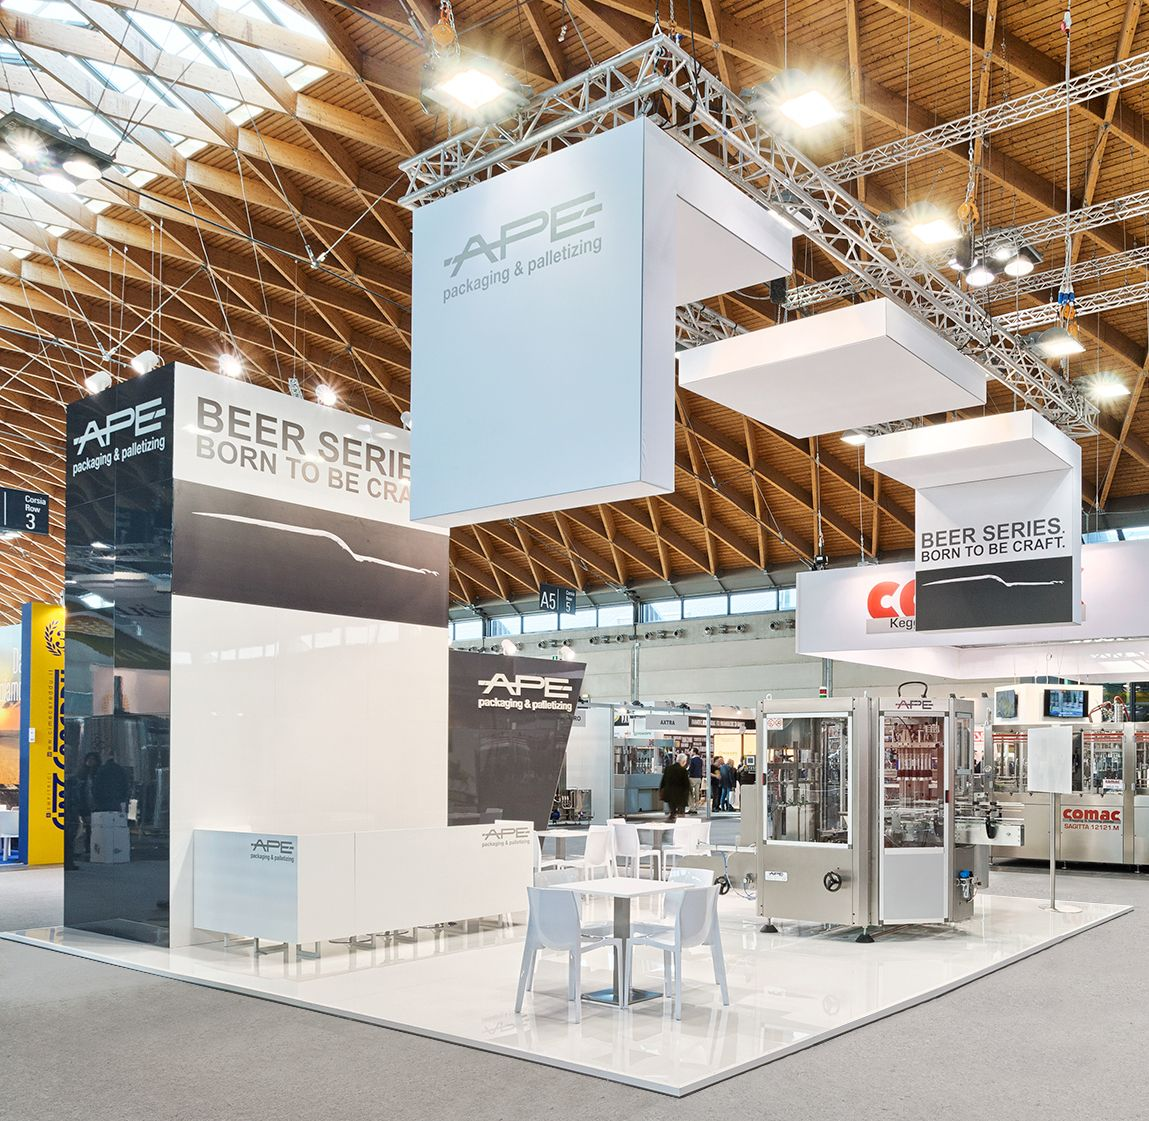 Exhibition Stand Attraction Ideas : Beauty beer fair rimini event stand exhibition